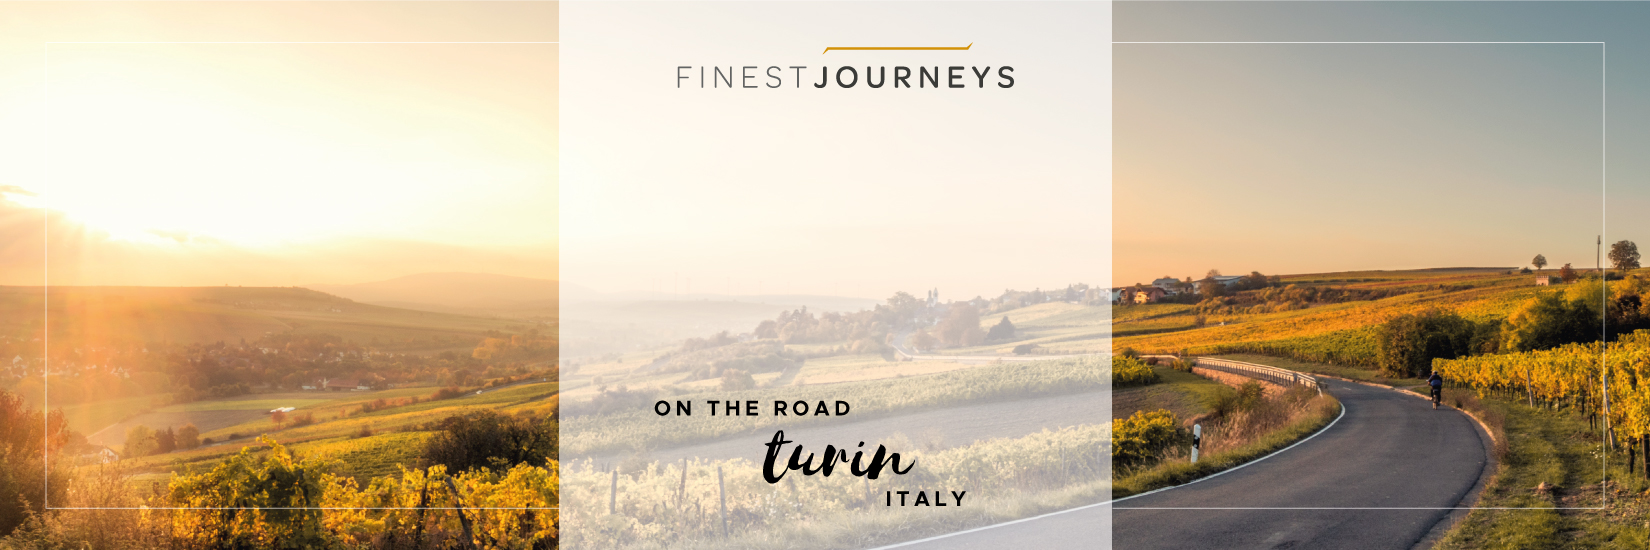 IMG : FINEST JOURNEYS ON THE ROAD – TURIN